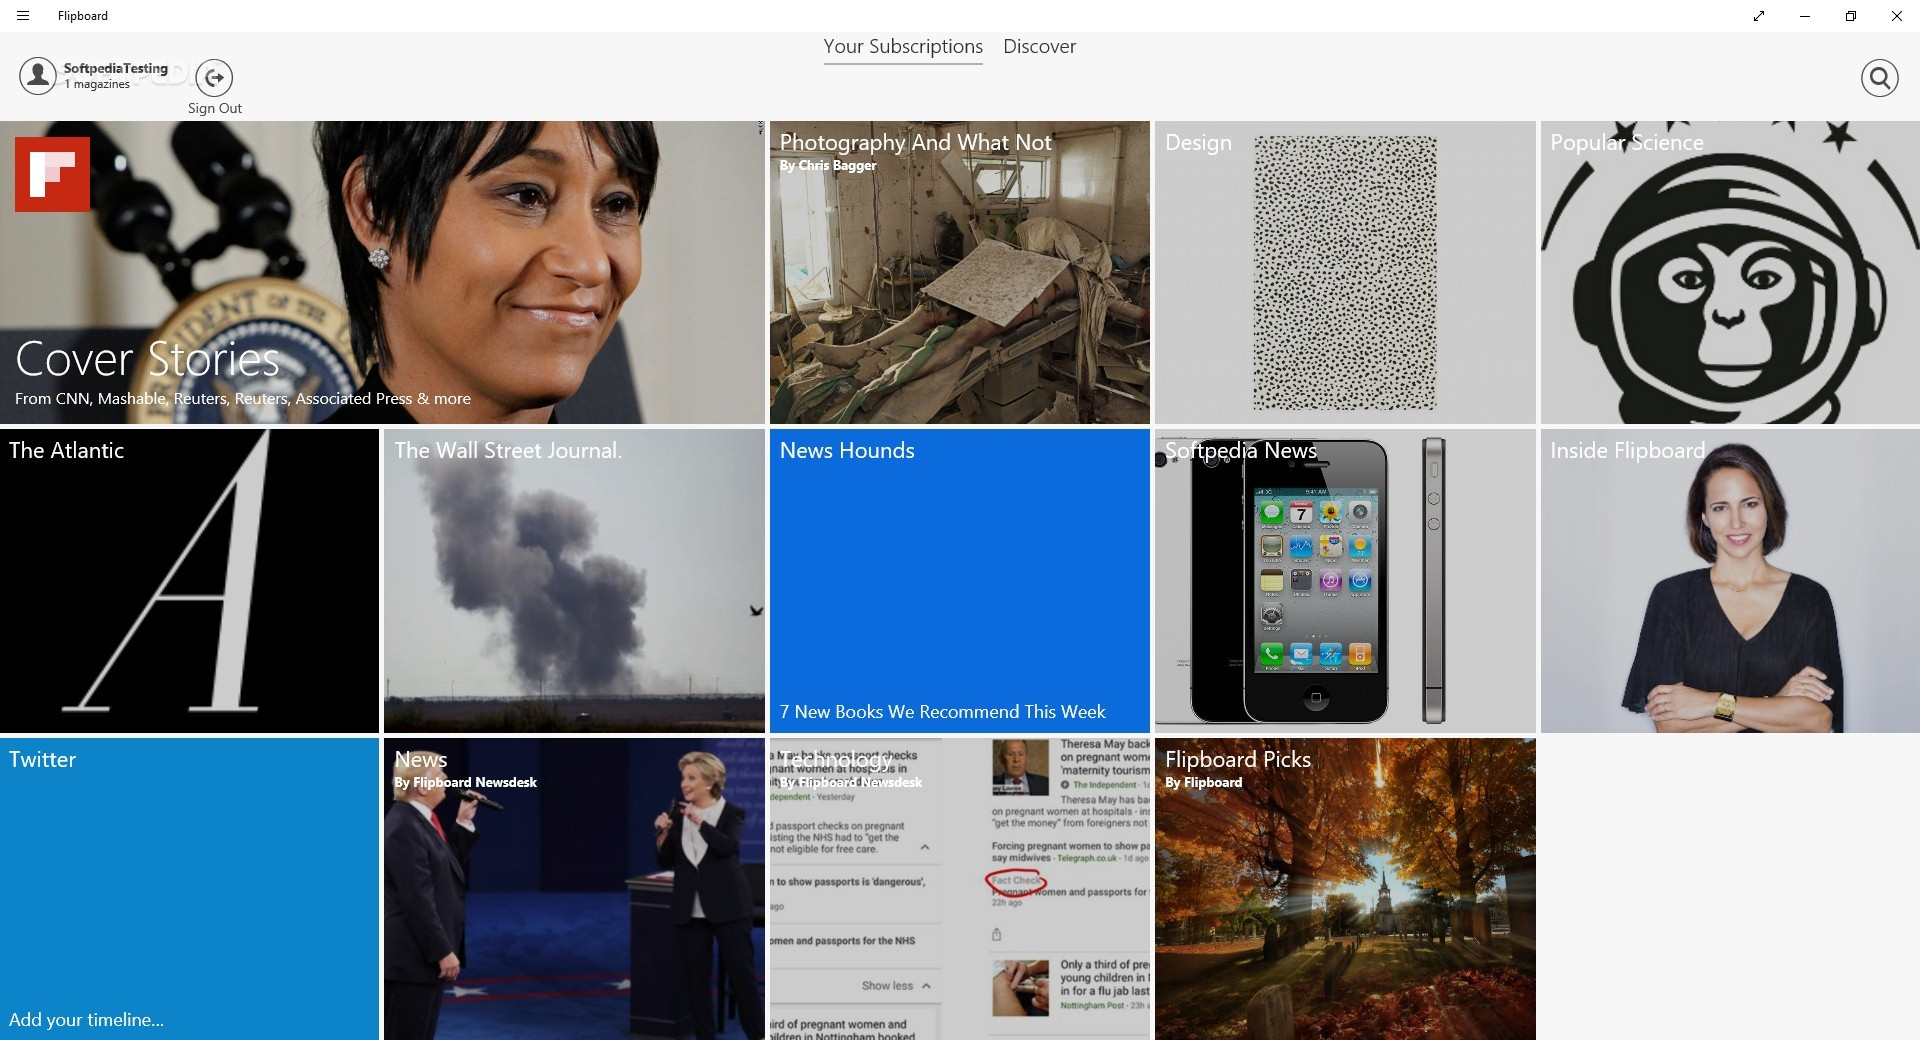 download flipboard for windows 10